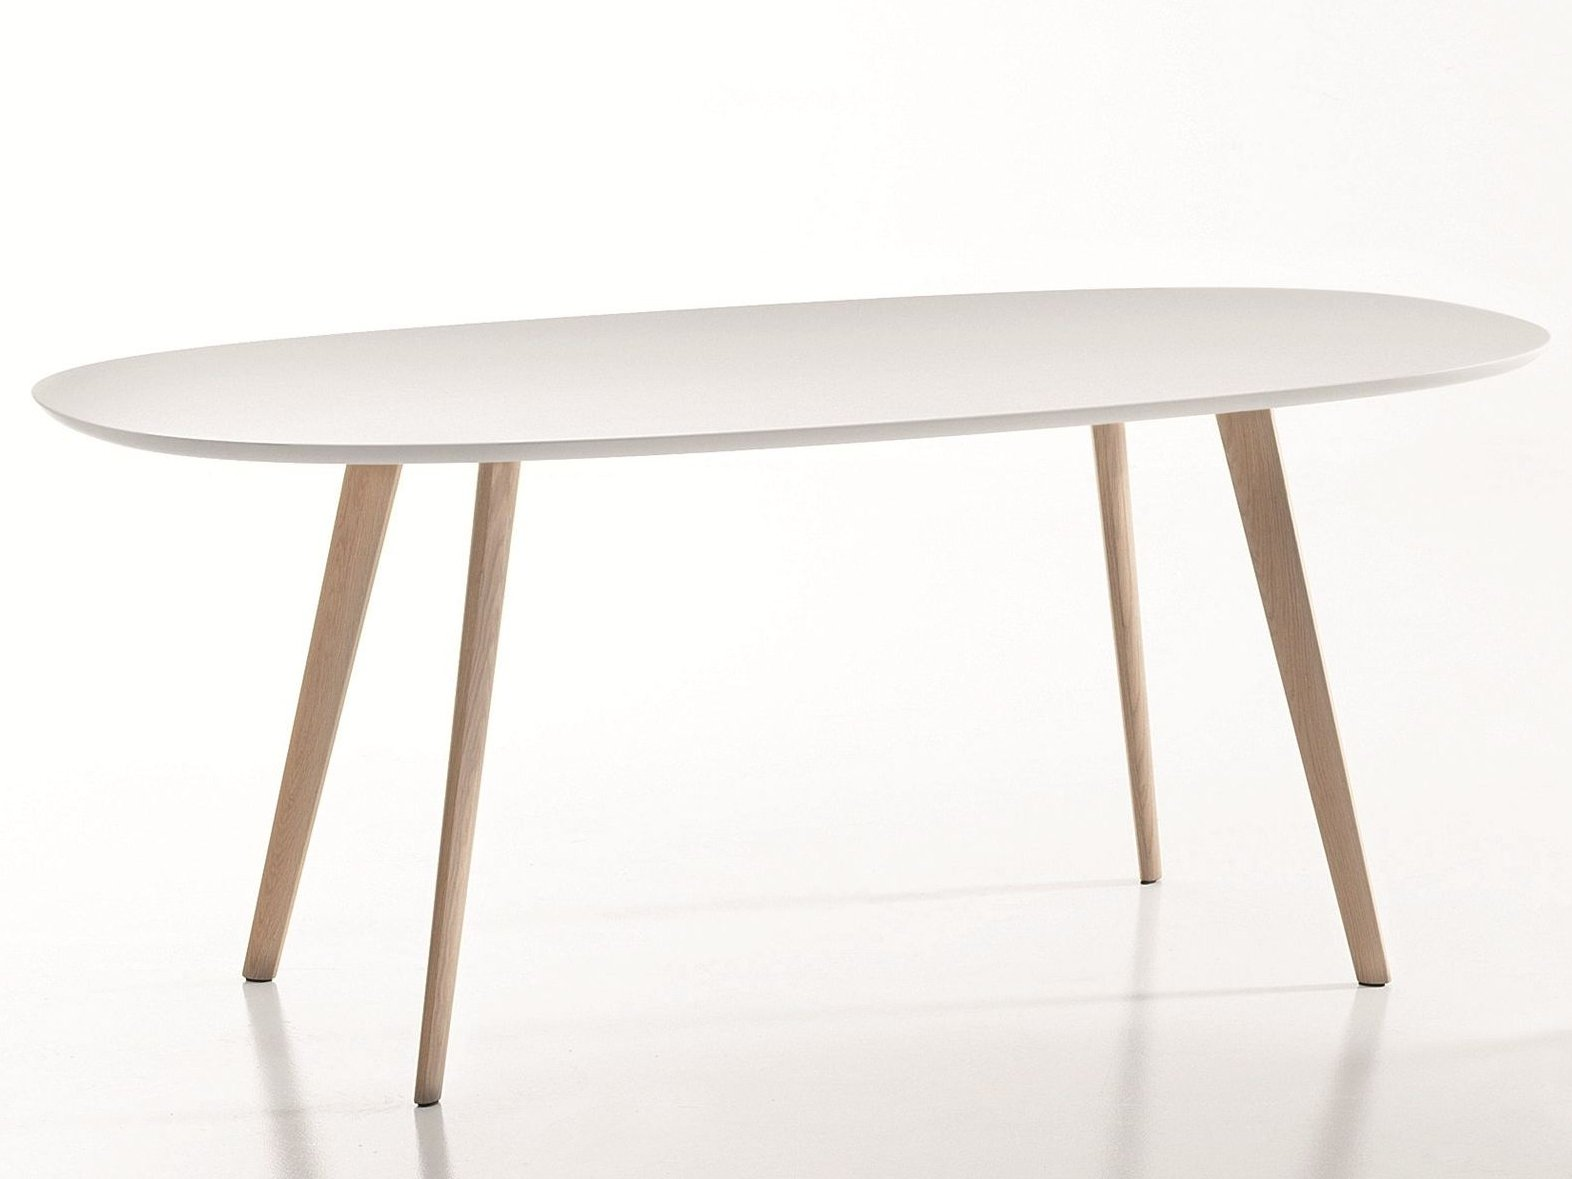 Gher table ovale by arper design lievore altherr molina for Table ovale design